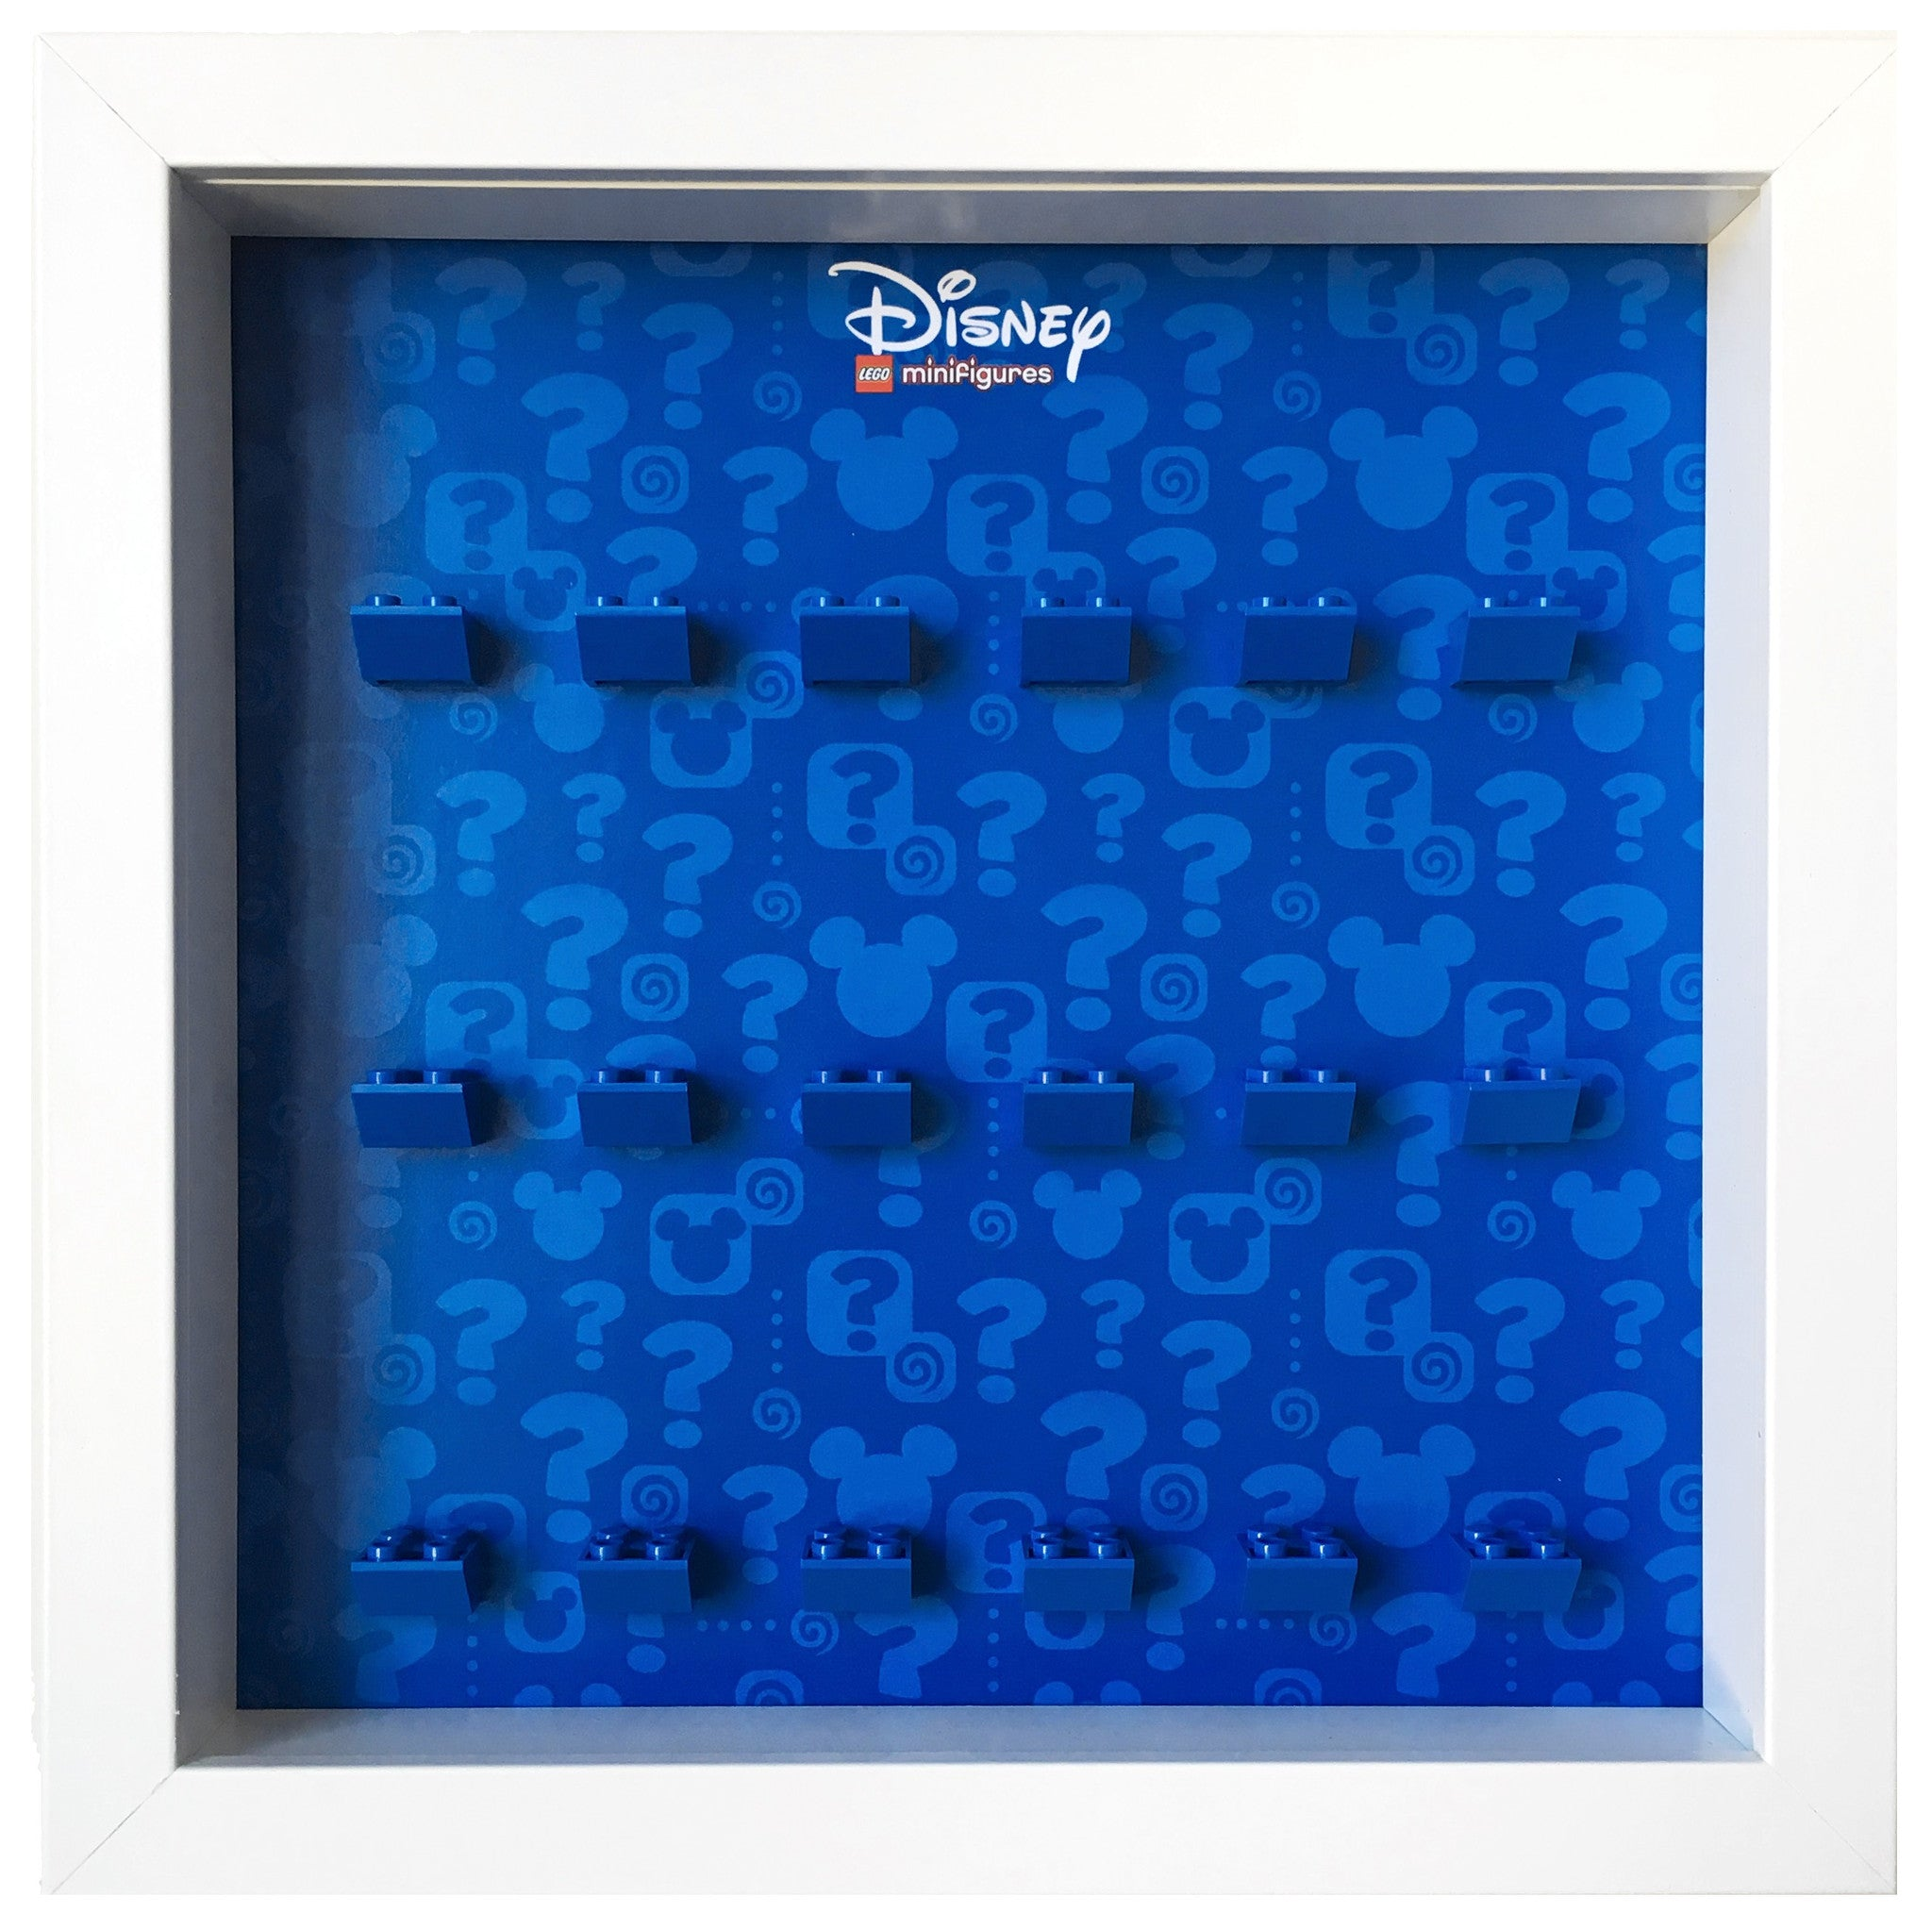 Lego Disney Minifigures frame 71012 – Lego Minifigures Display